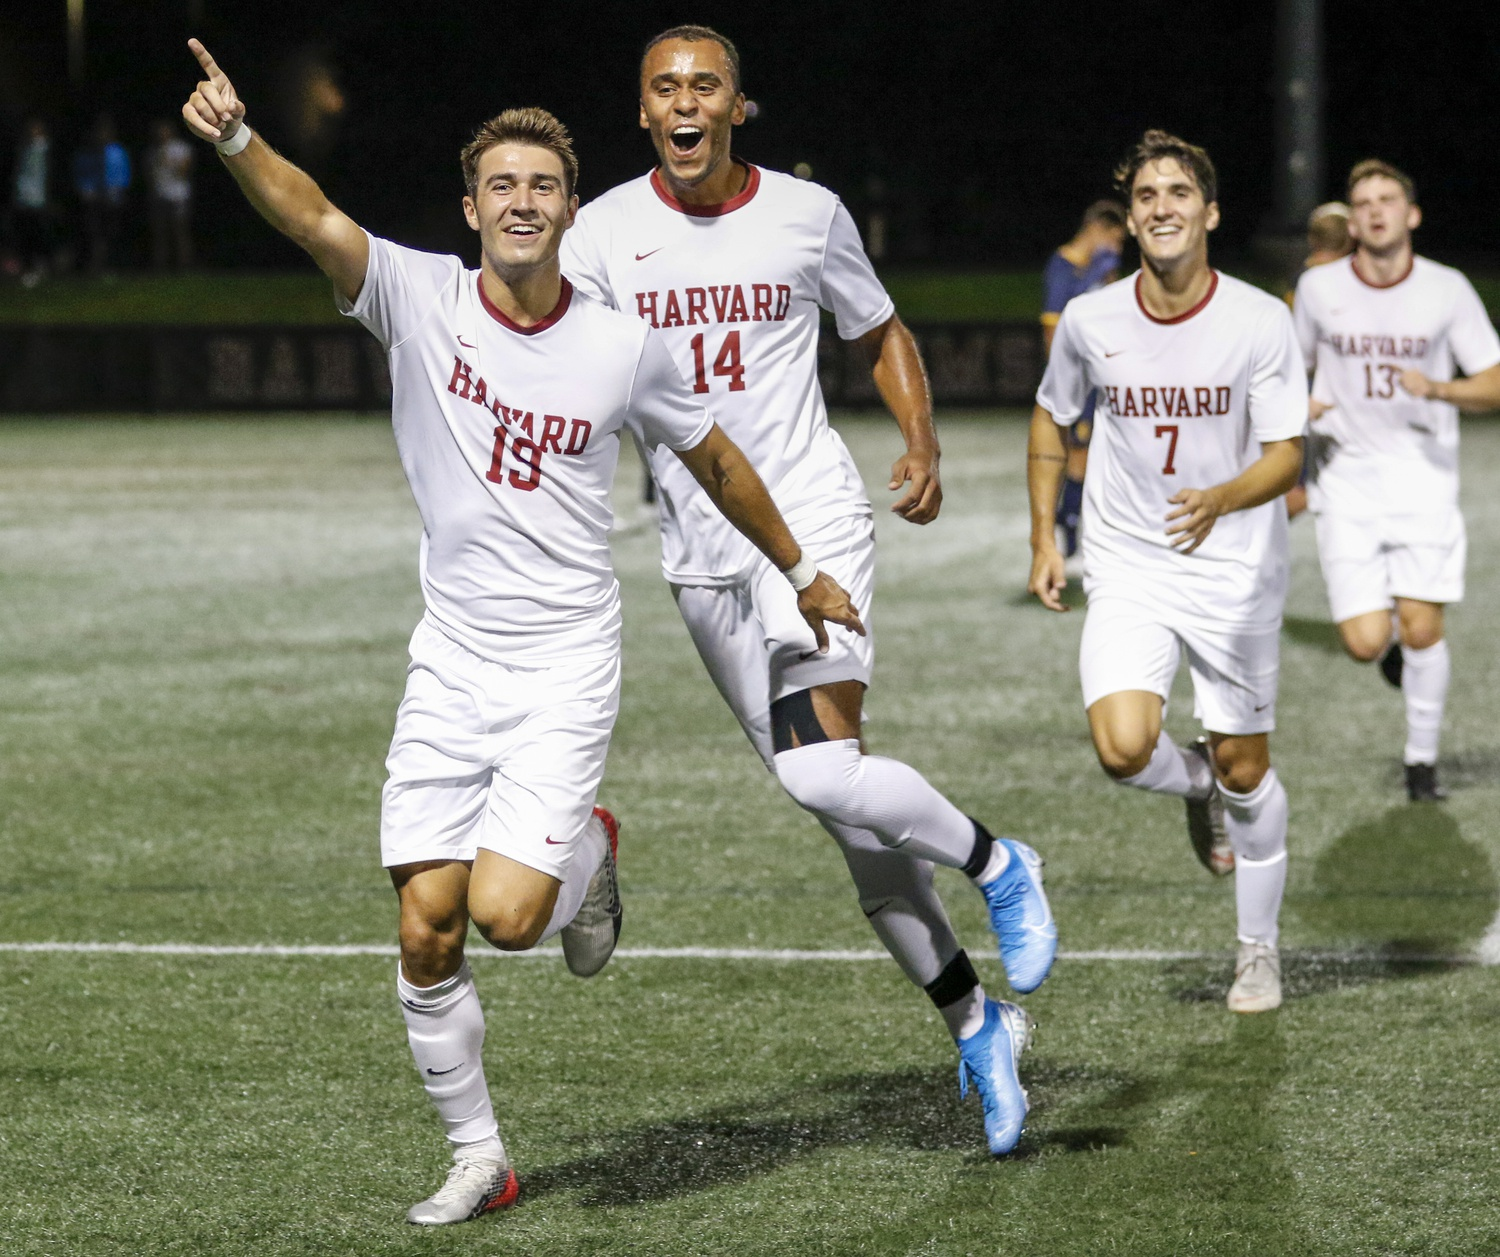 Harvard celebrates a goal in a 2019 matchup with Merrimack. The Crimson has had 5 opportunities to celebrate goals this season, after 4-0 and 1-1 results, and narrowly missed a chance for a sixth goal in Saturday's extra time against Bryant.